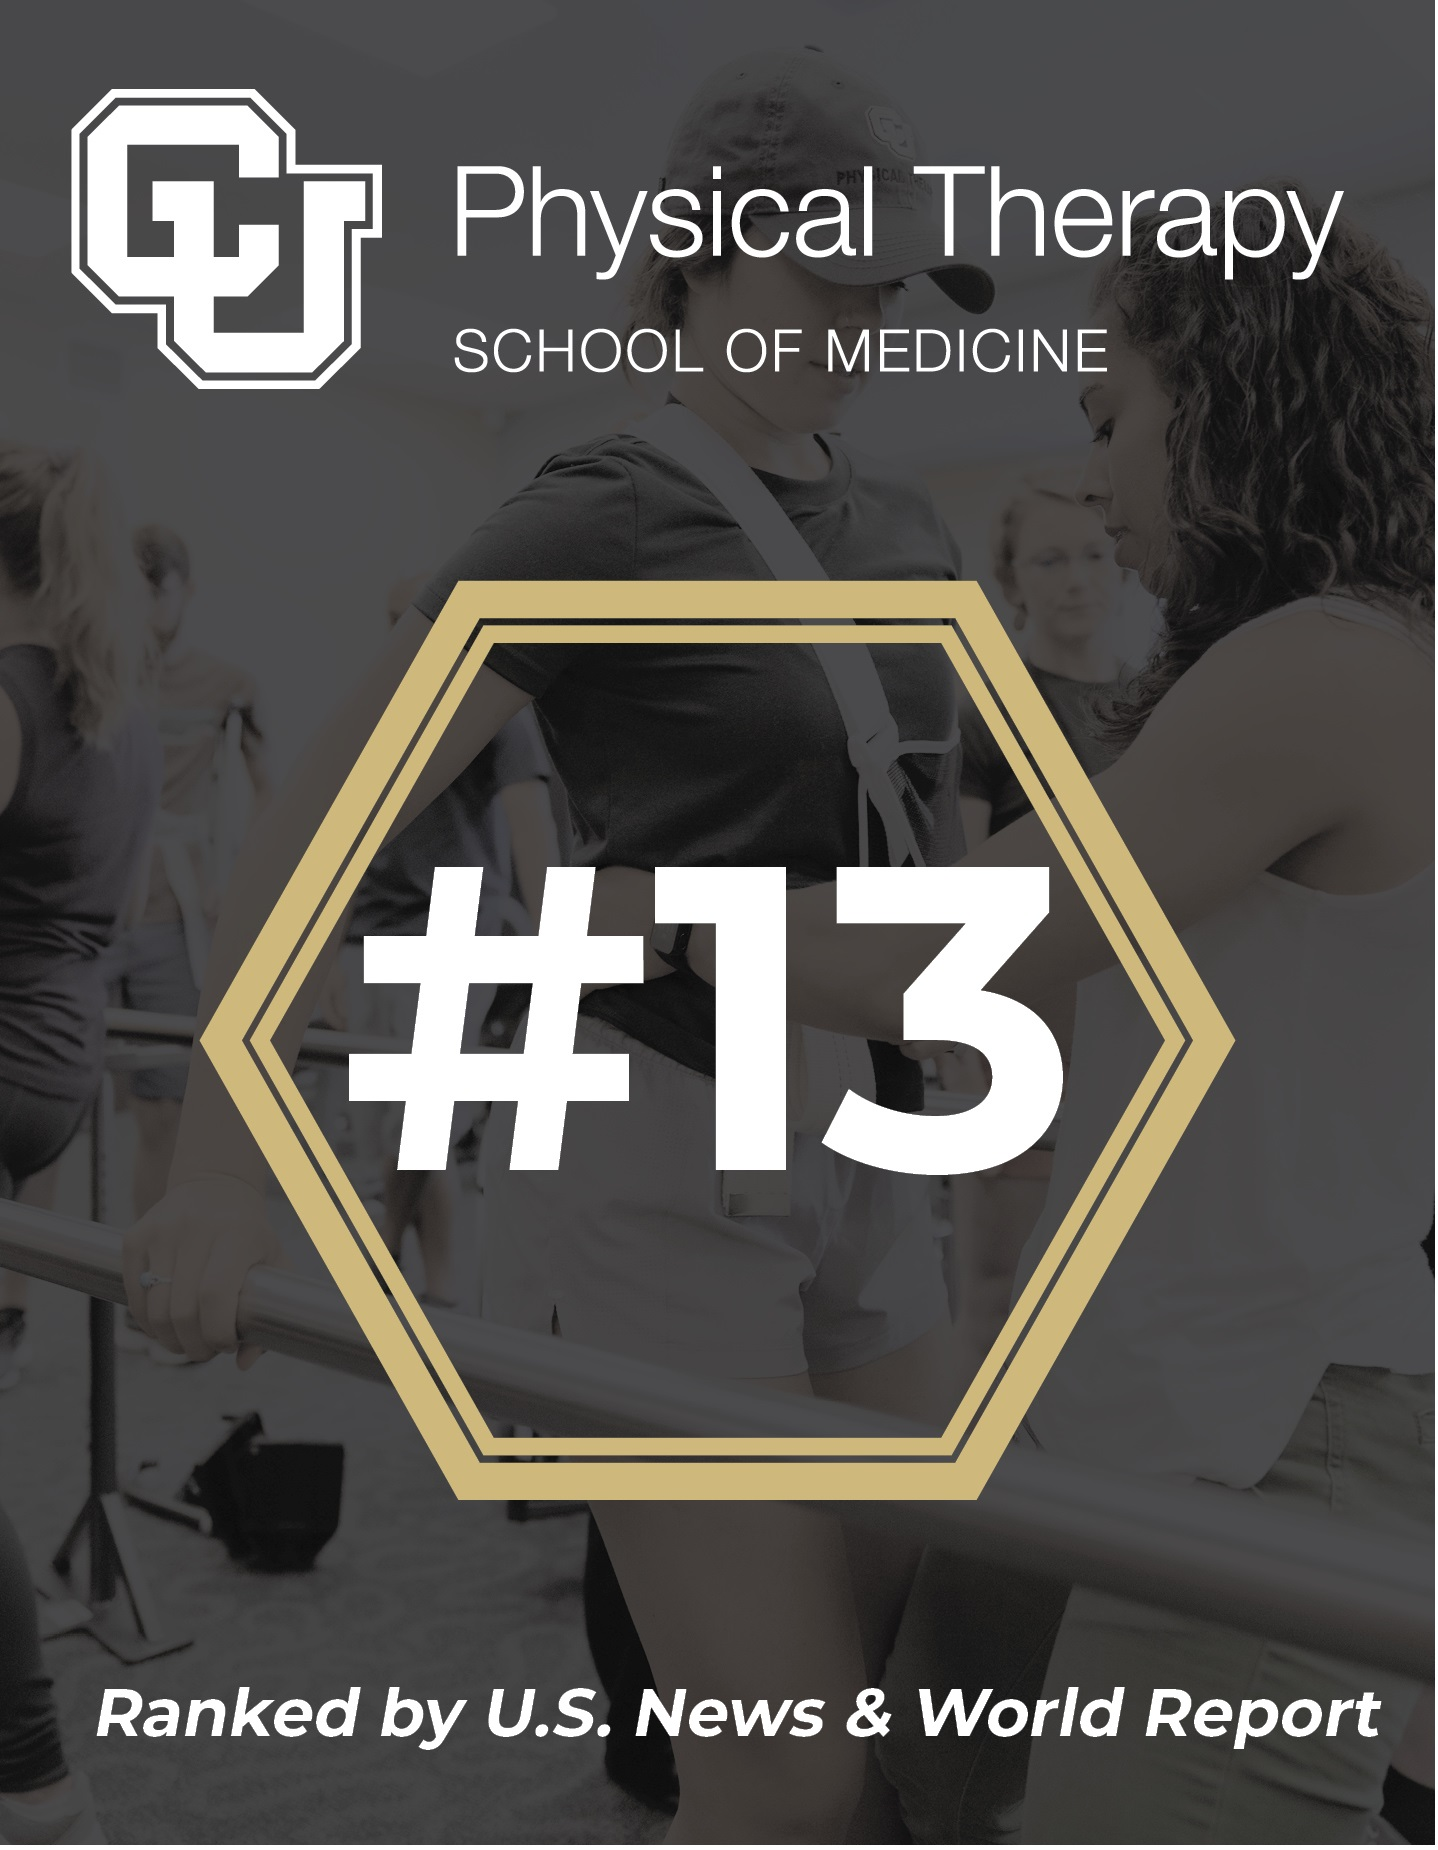 CU Physical Therapy, School of Medicine